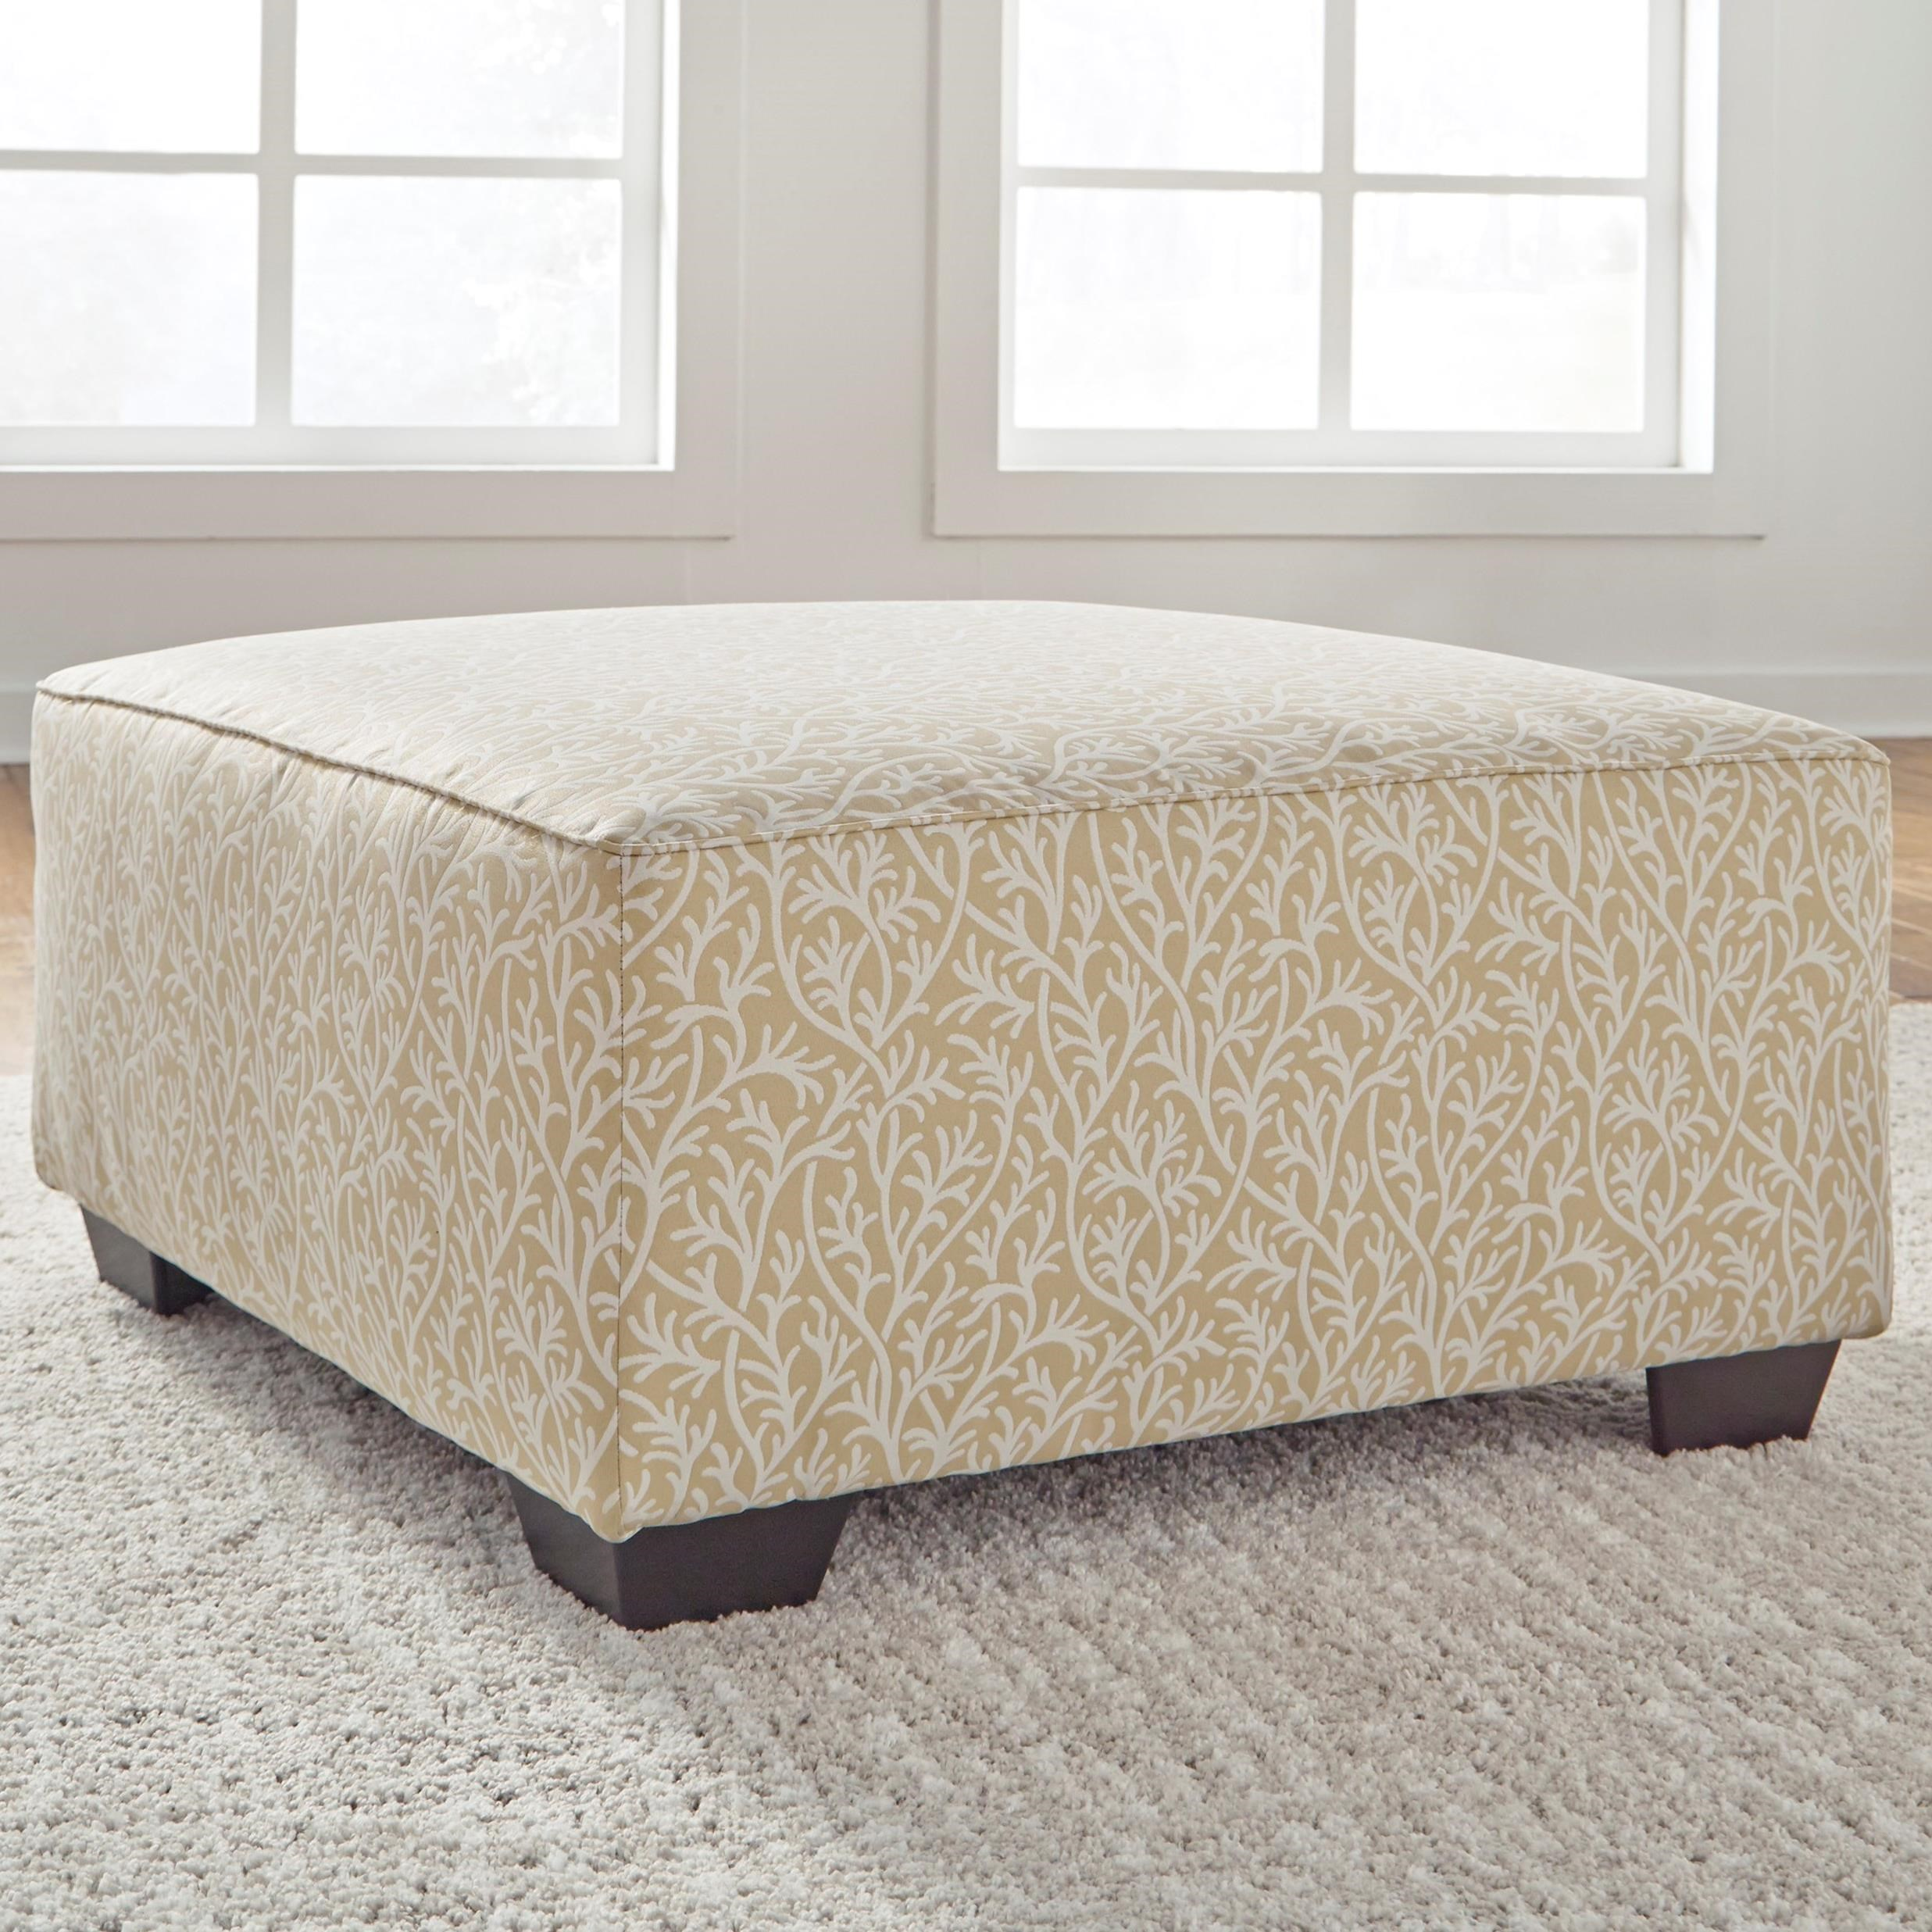 Benchcraft Ayanna Nuvella Oversized Accent Ottoman - Item Number: 9470508